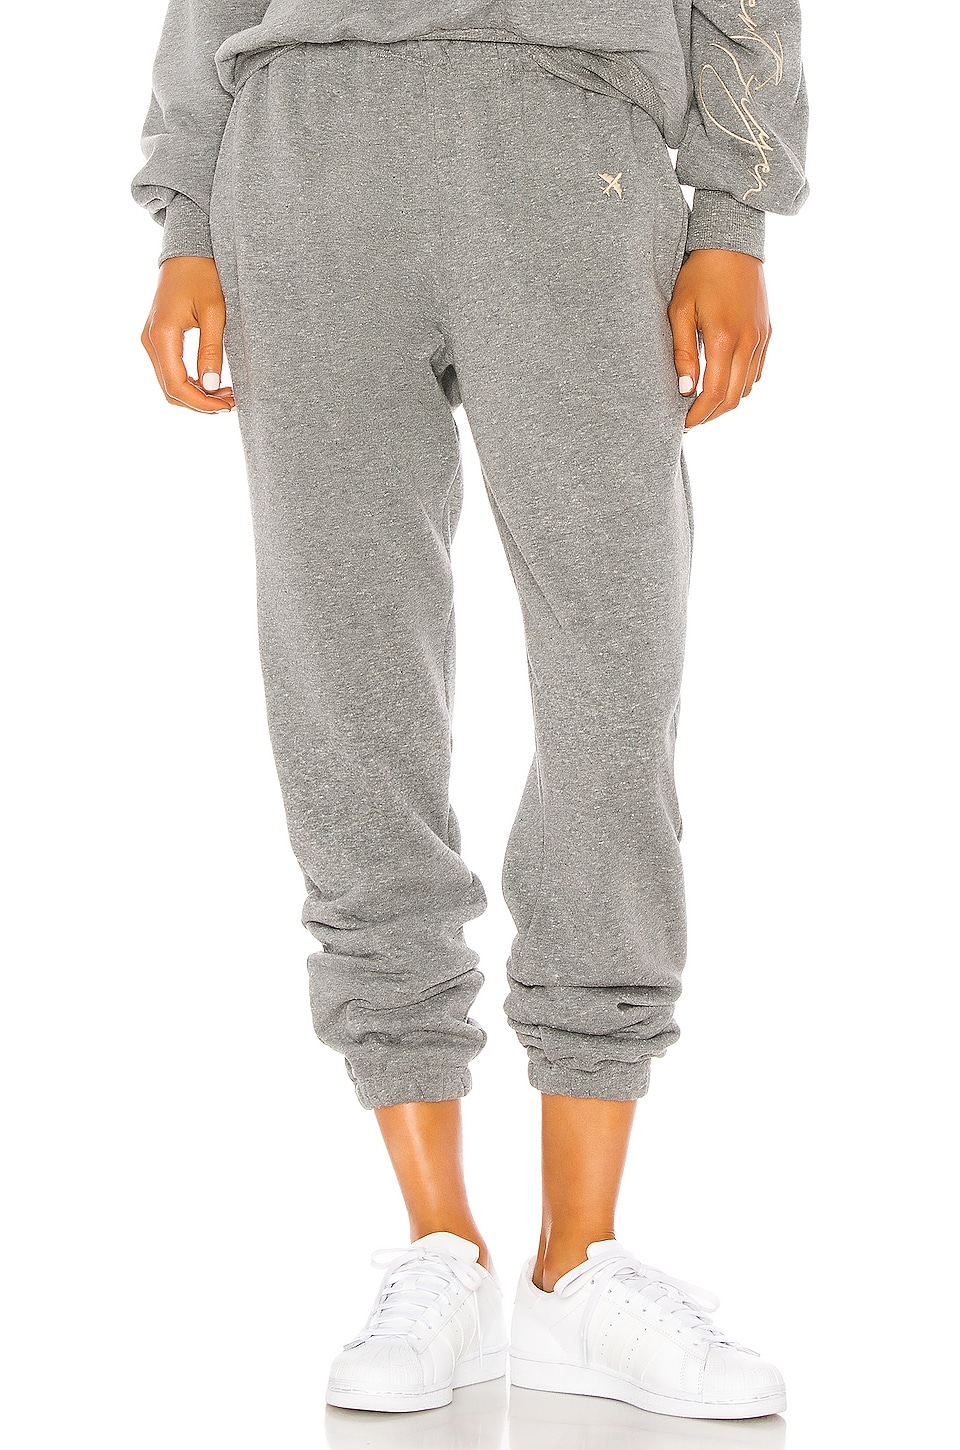 Shaycation x REVOLVE Frequent Flyer Sweatpant in Heather Grey